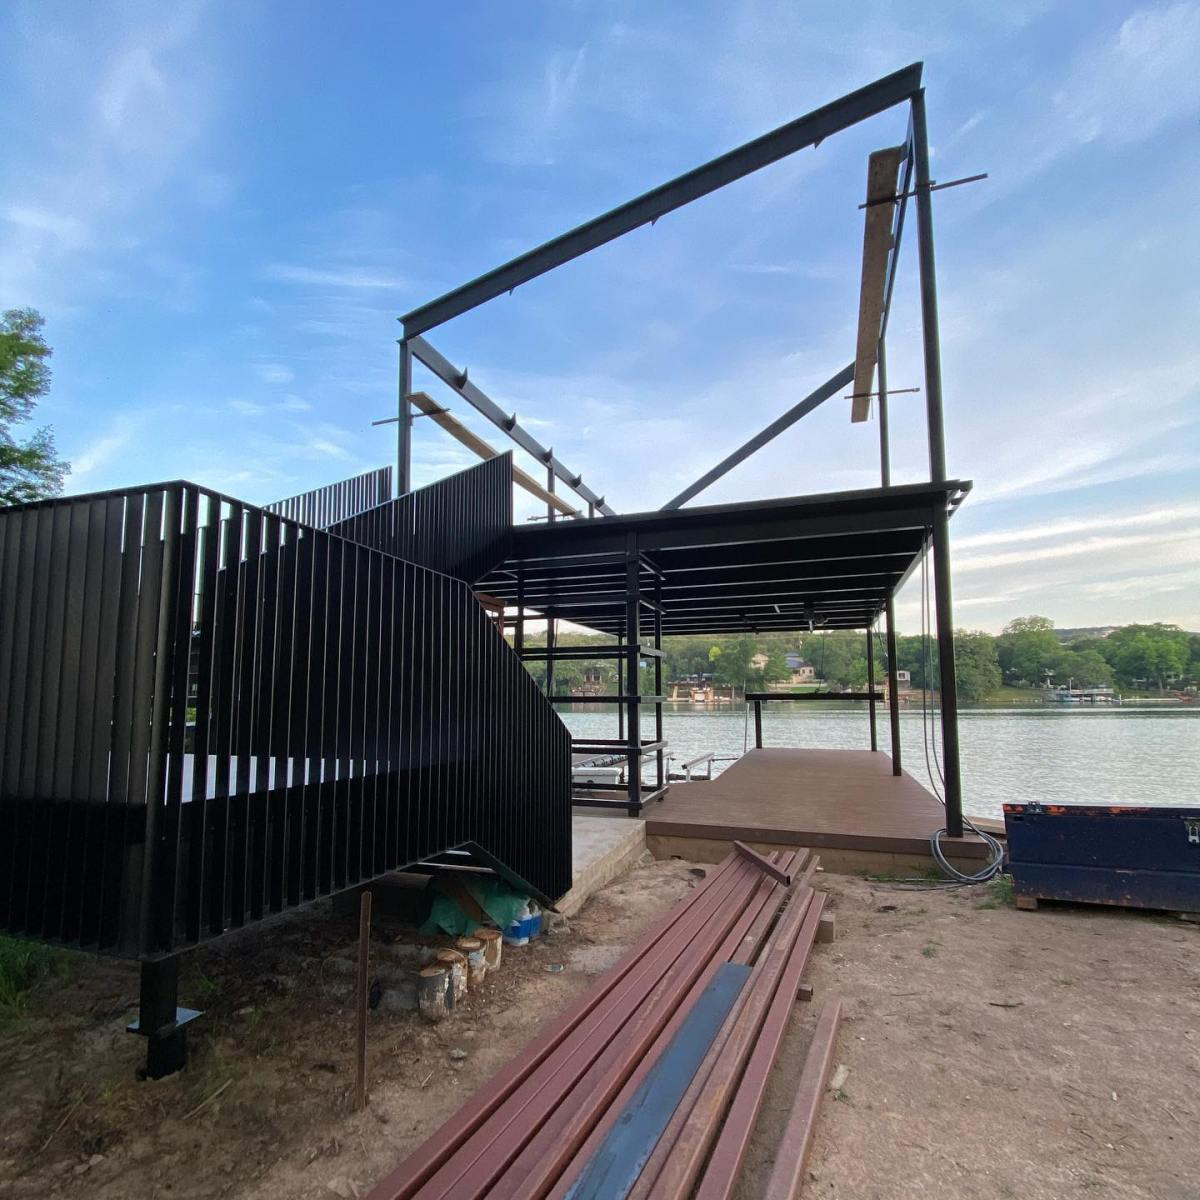 Lake Austin boat dock being built by @foursquarebuilders and designed by @breckstudio